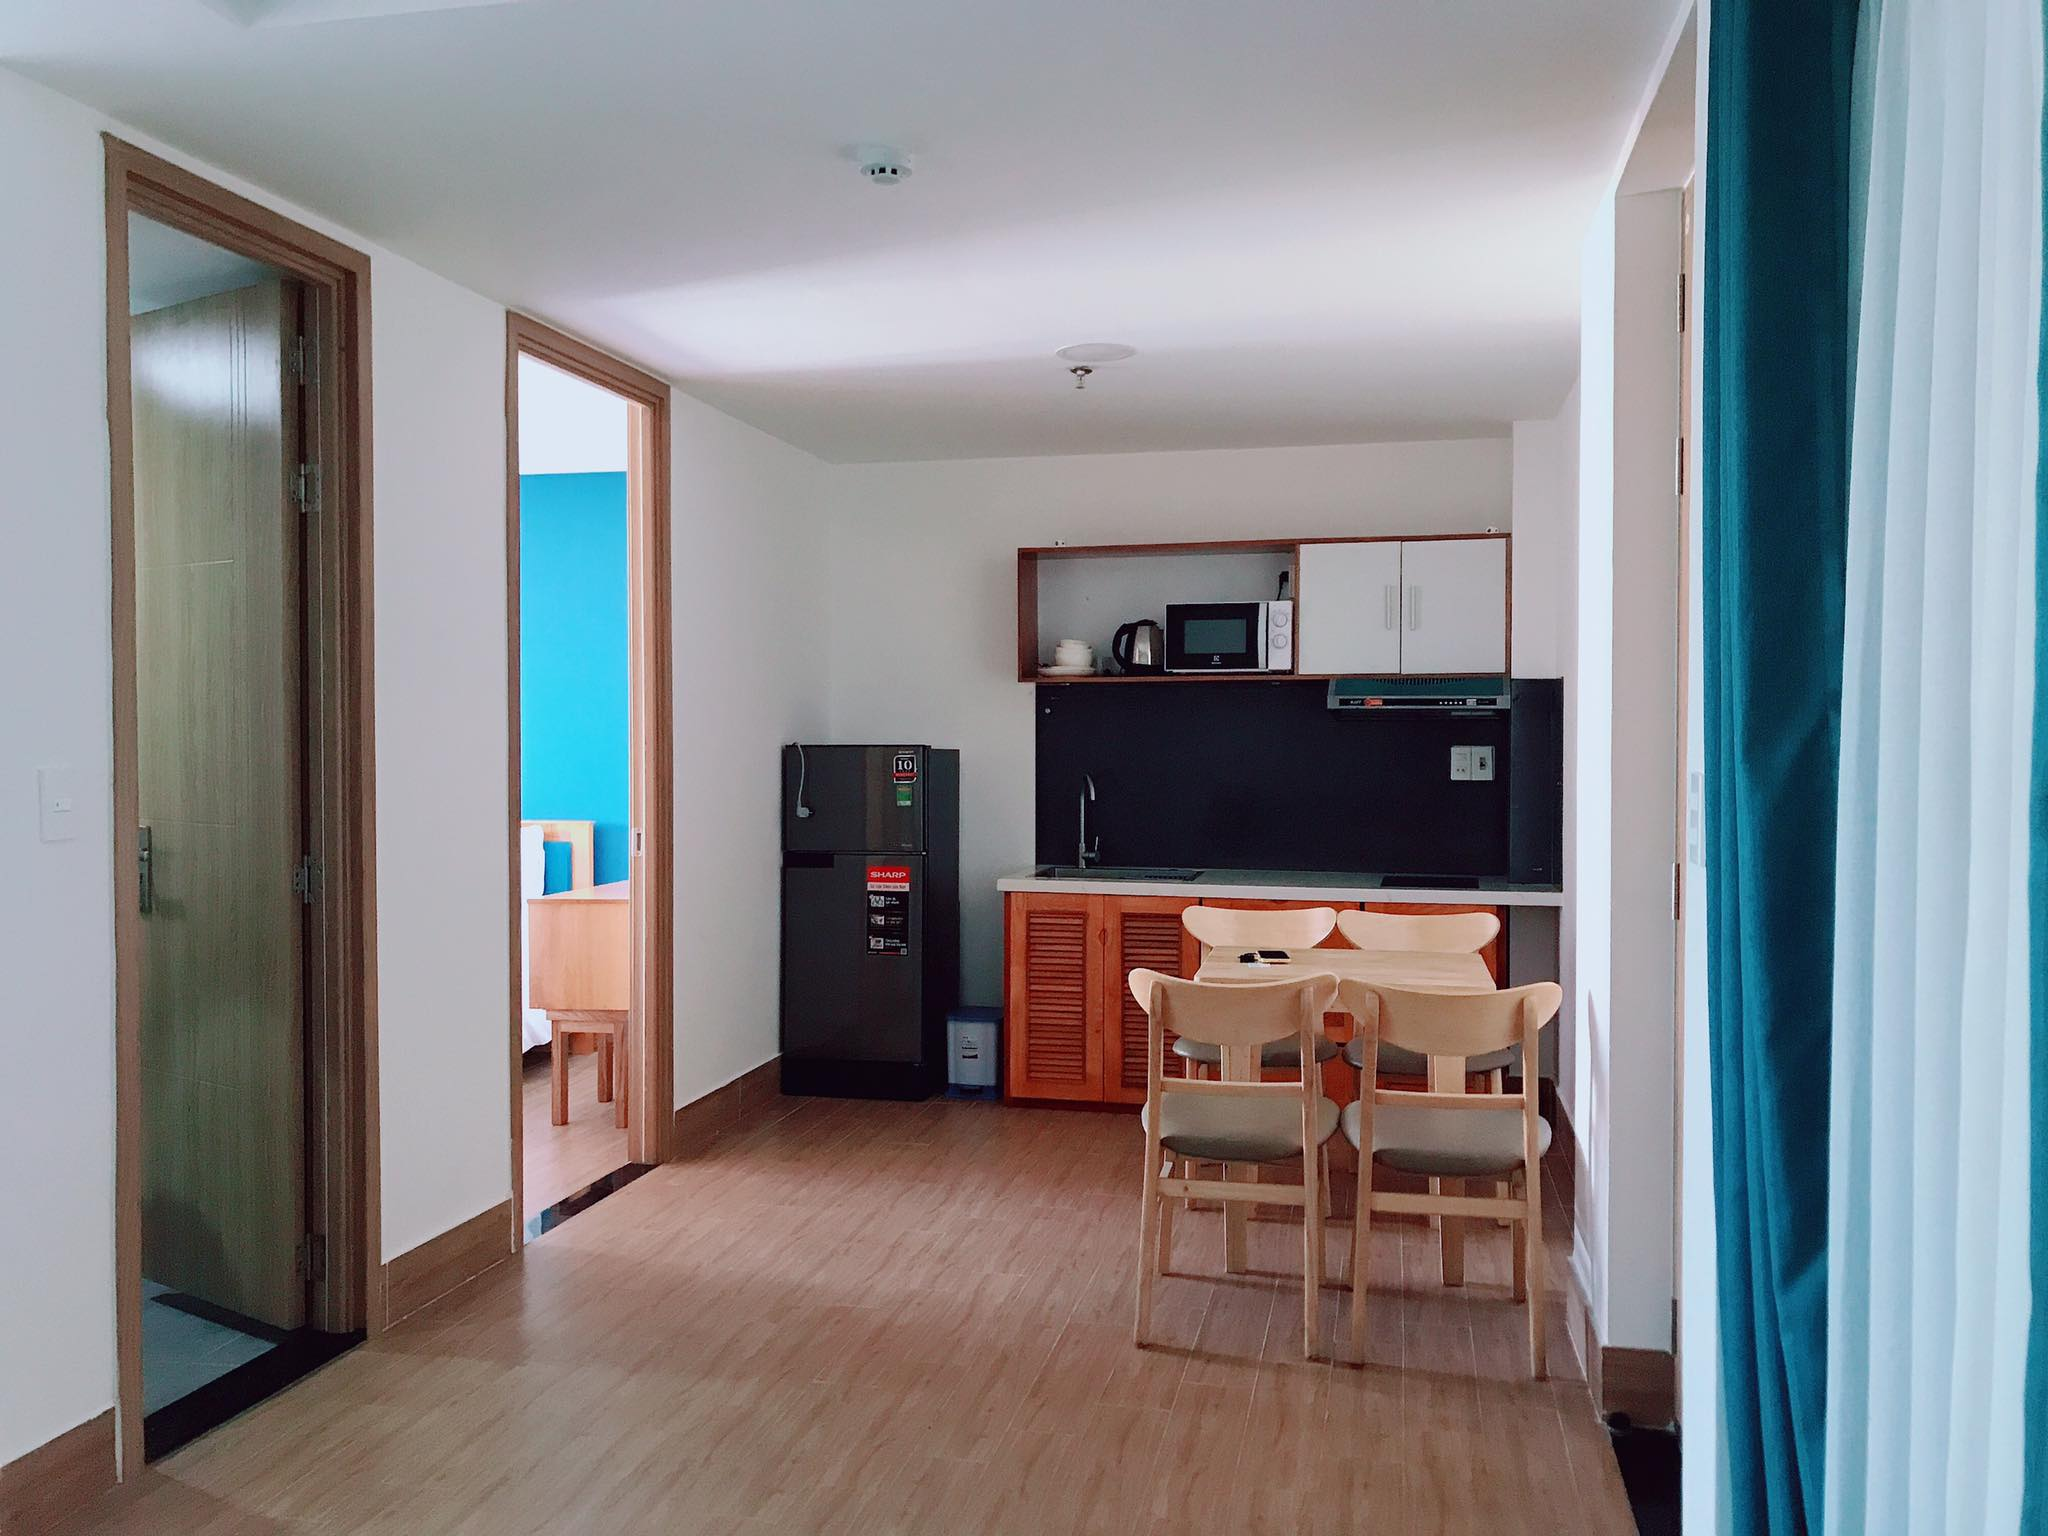 2 bedroom apartment for rent with big balcony near Bac My An Market Da Nang